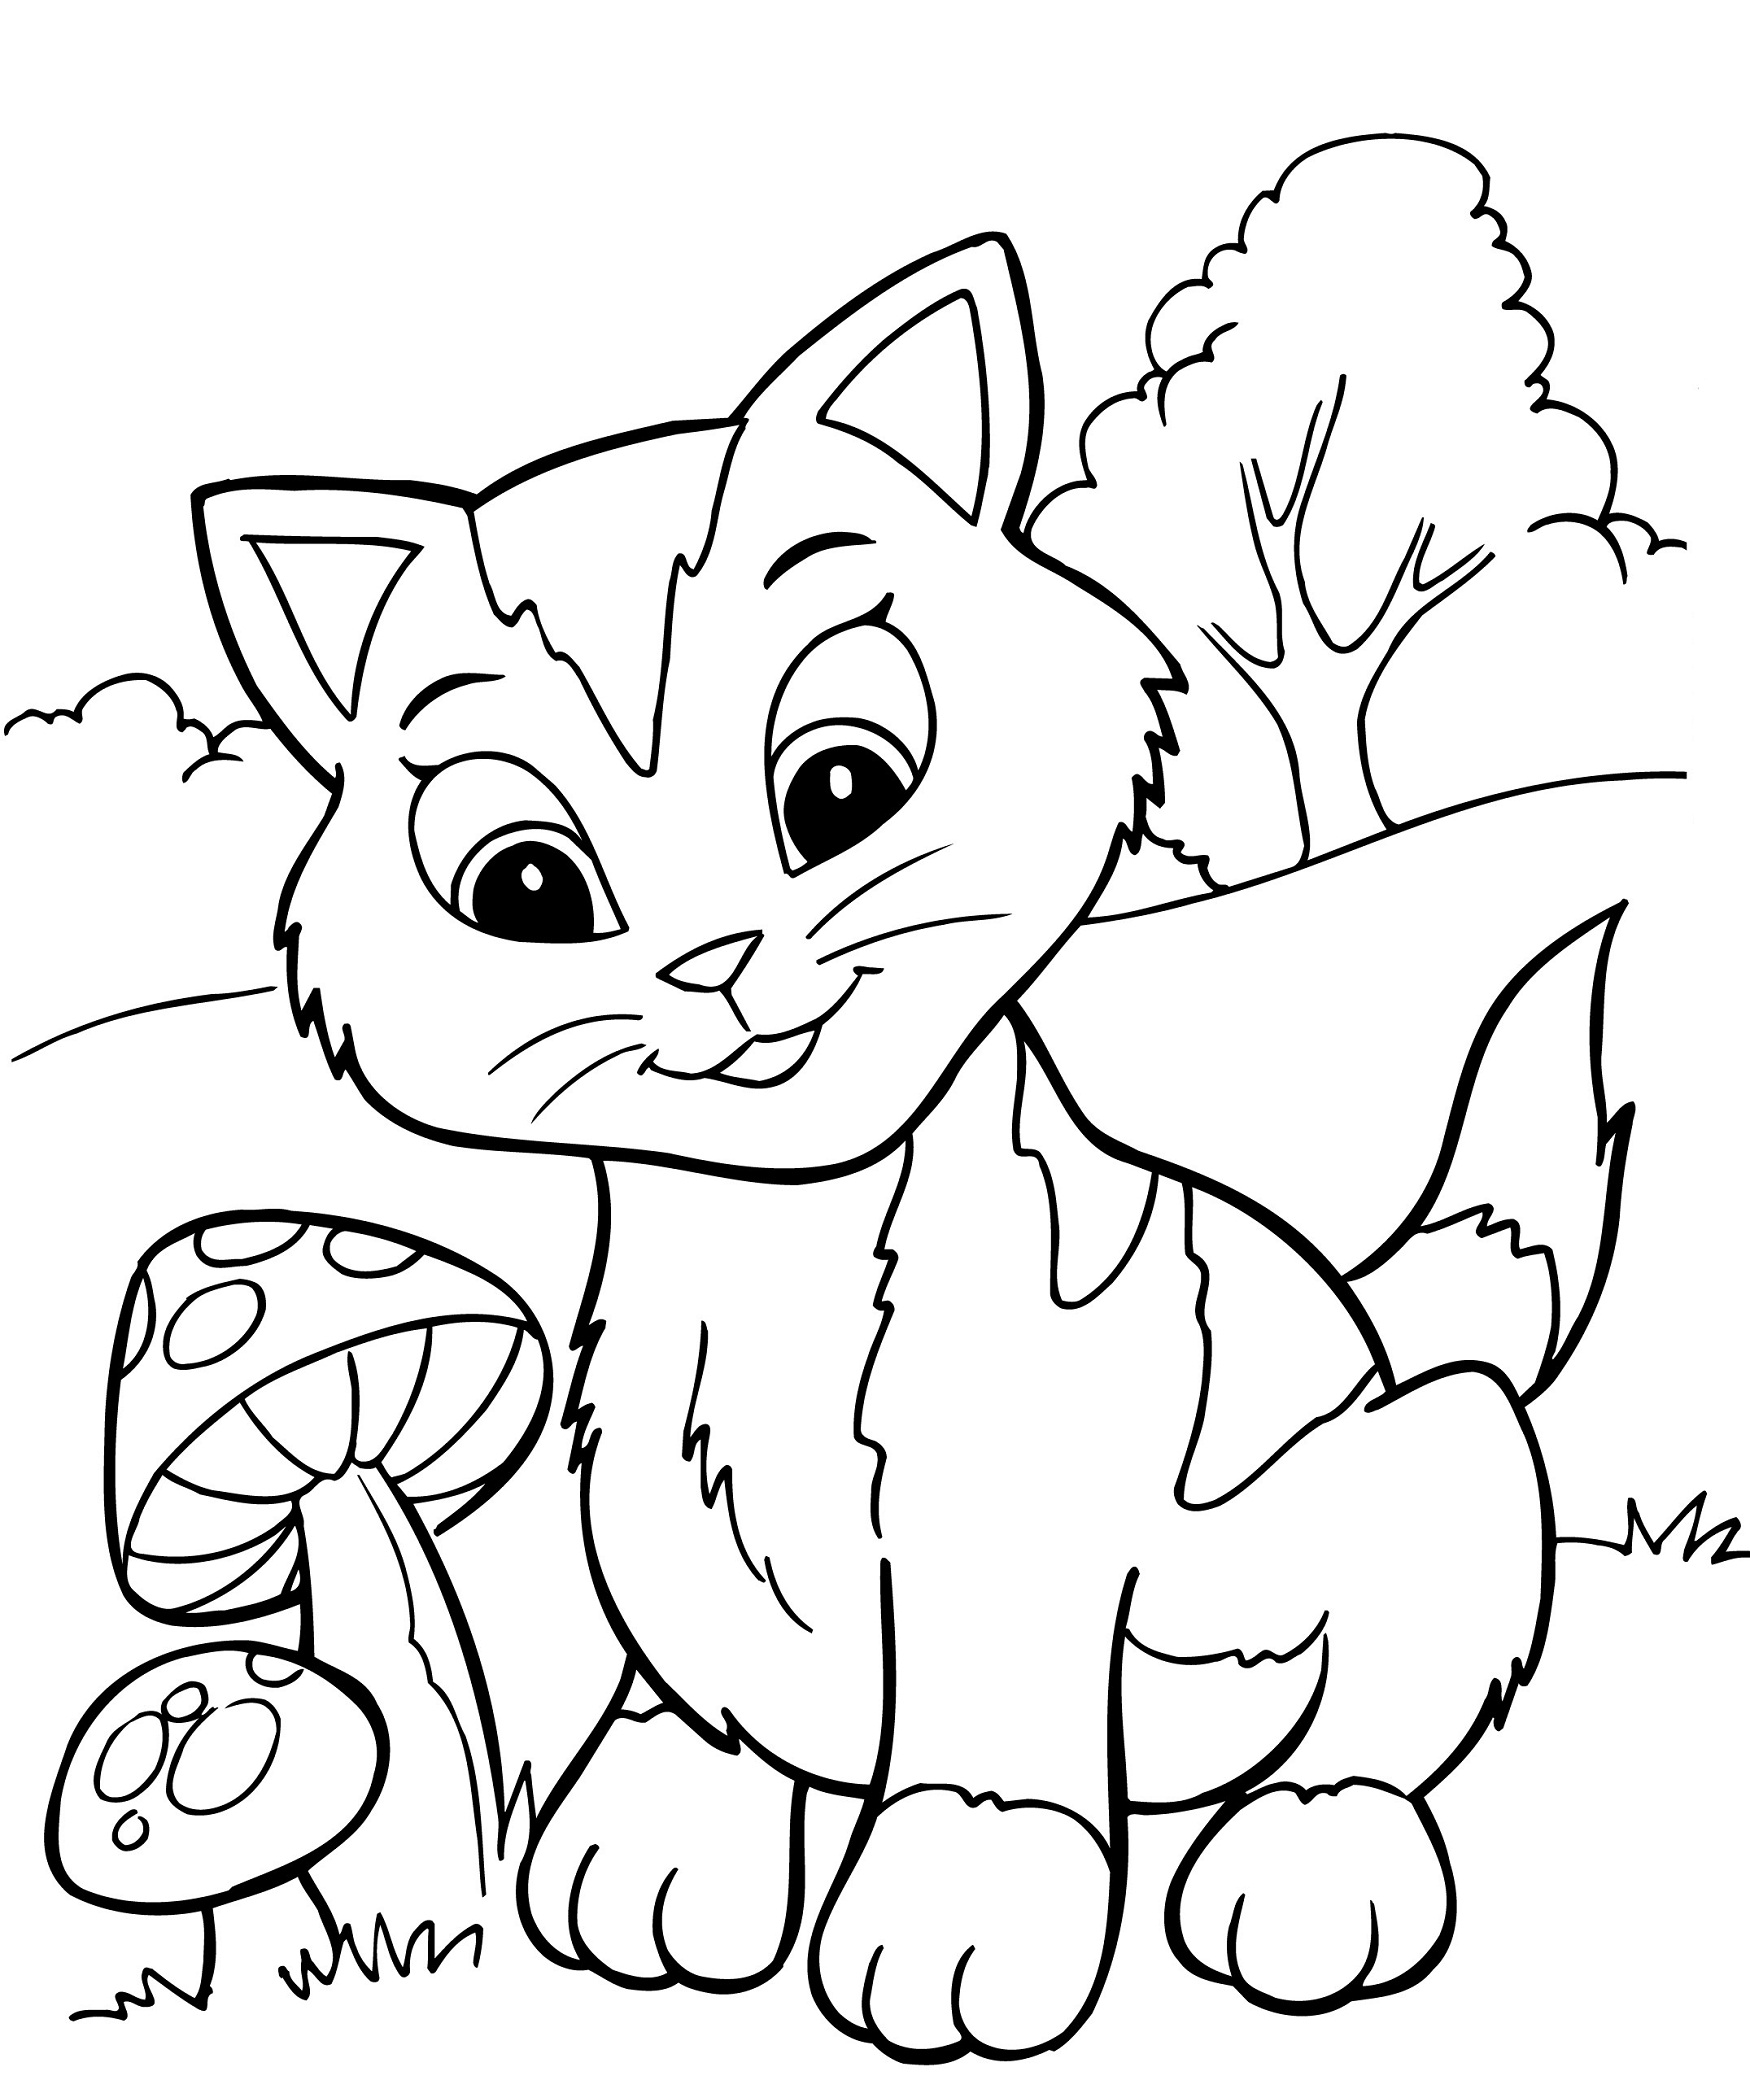 coloring cat pages free printable kitten coloring pages for kids best coloring cat pages